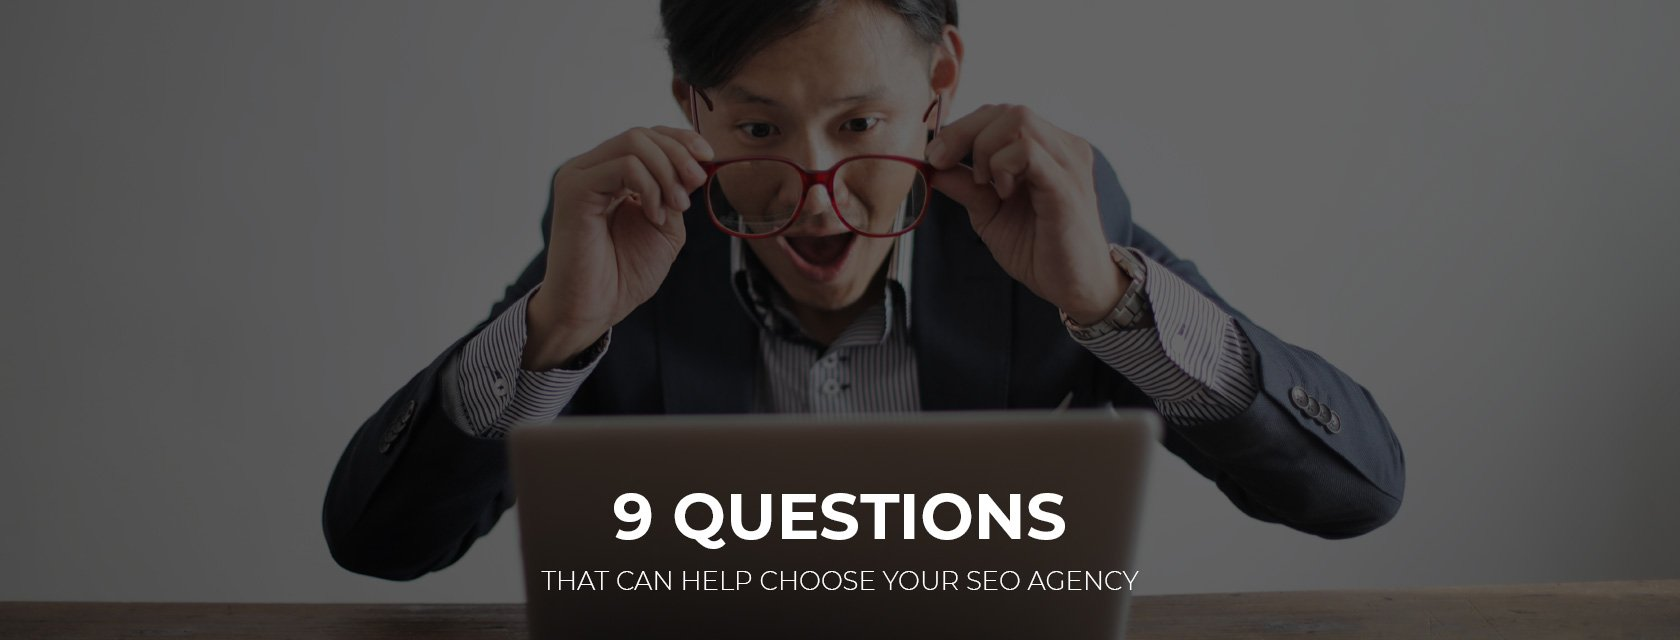 How to Choose an eCommerce SEO Agency in 2021?